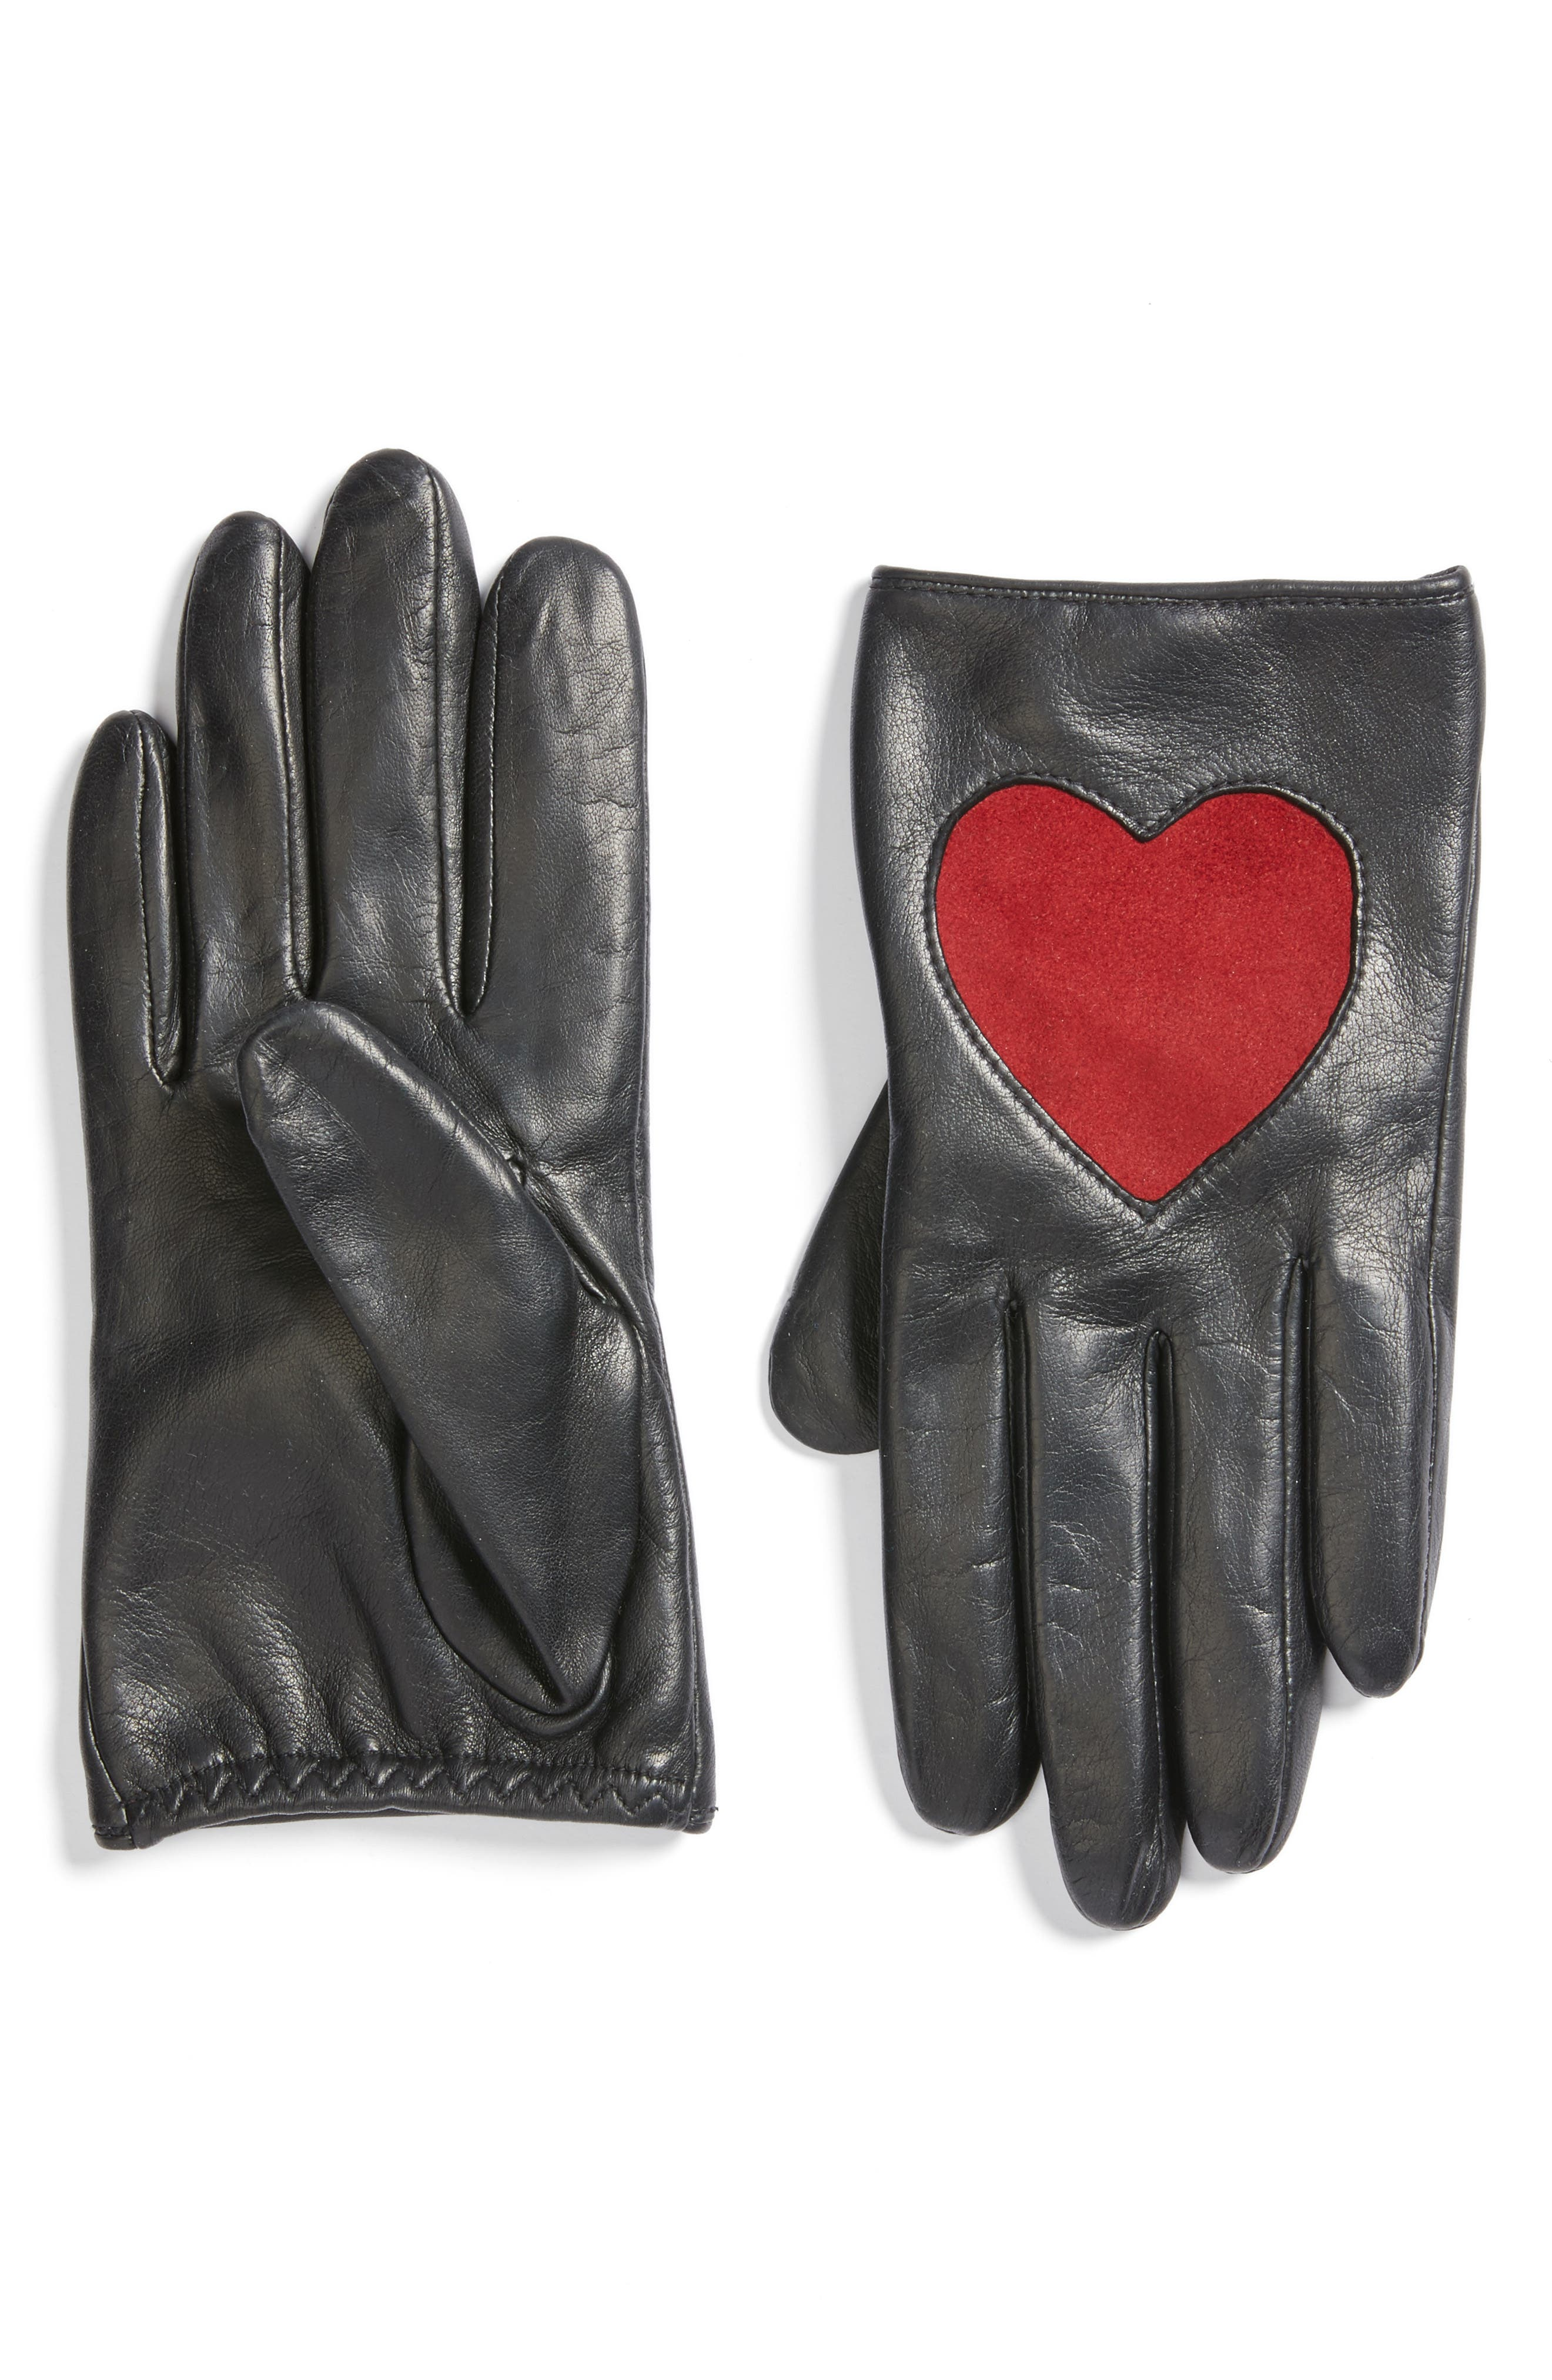 Main Image - Fownes Brothers Heart Leather Gloves